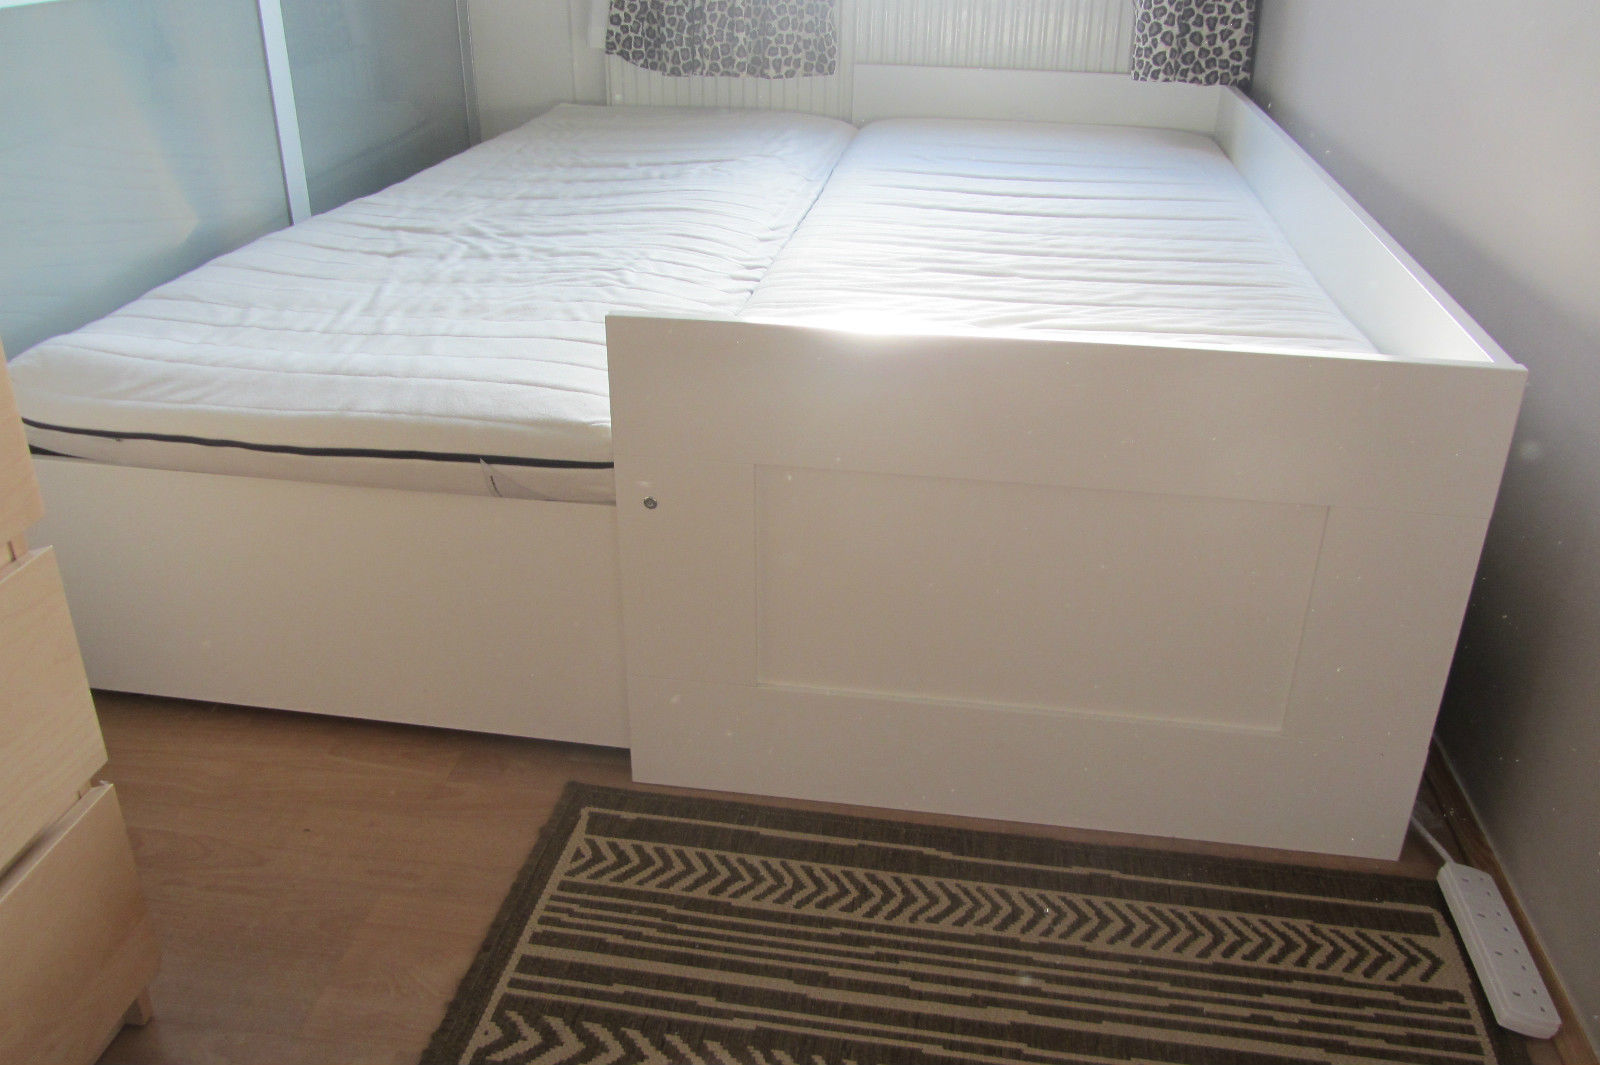 ikea-brimnes-day-bed-frame-with-3-drawers-and-_57